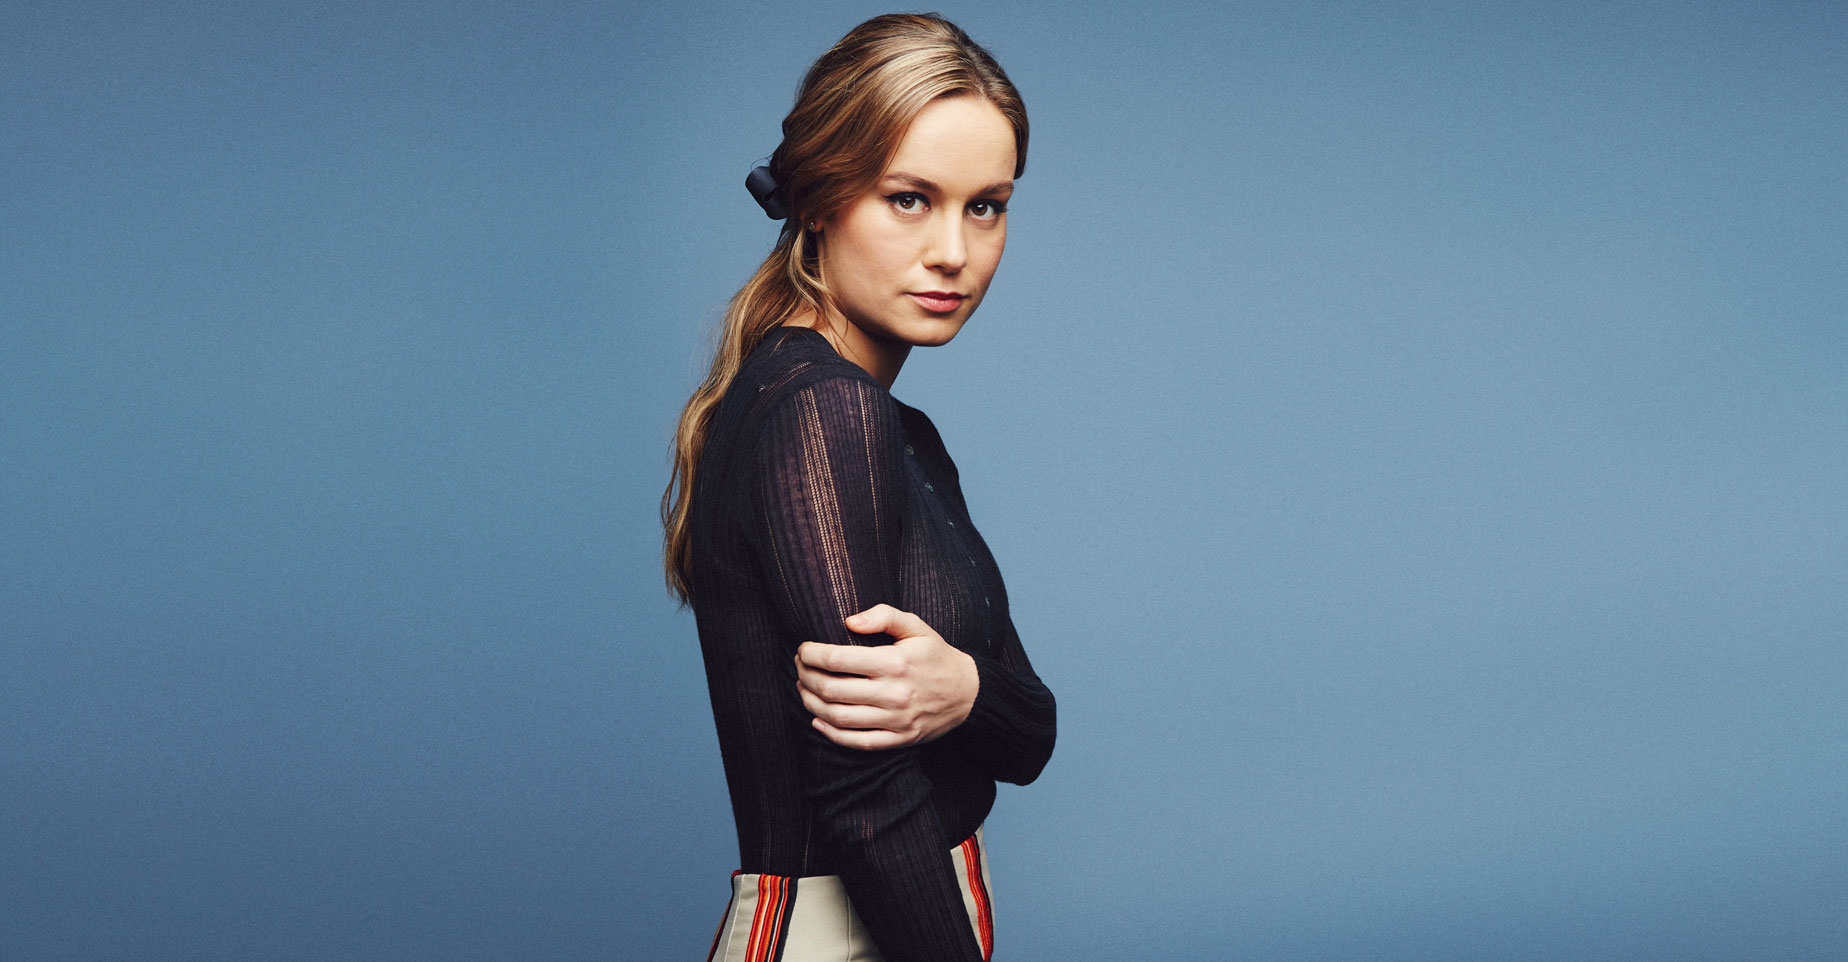 Brie-Larson-Wiki-Biography-Age-Height-Weight-Profile-Body Measurement